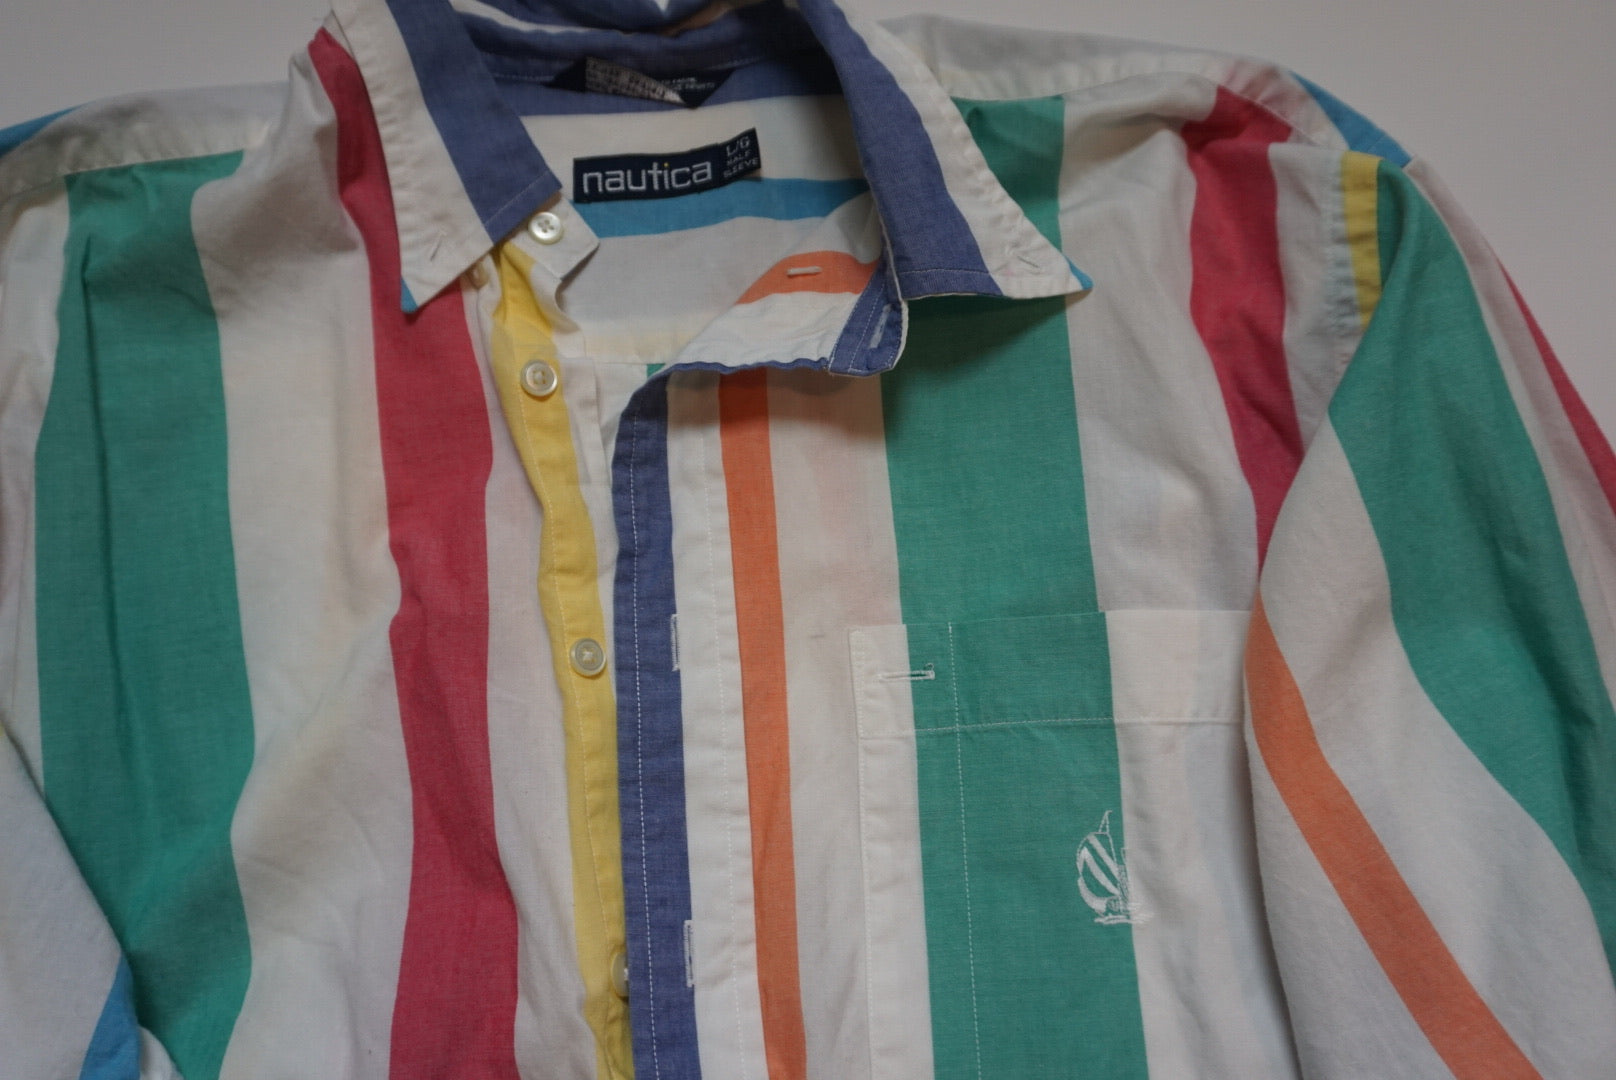 NAUTICA STRIPED TOP